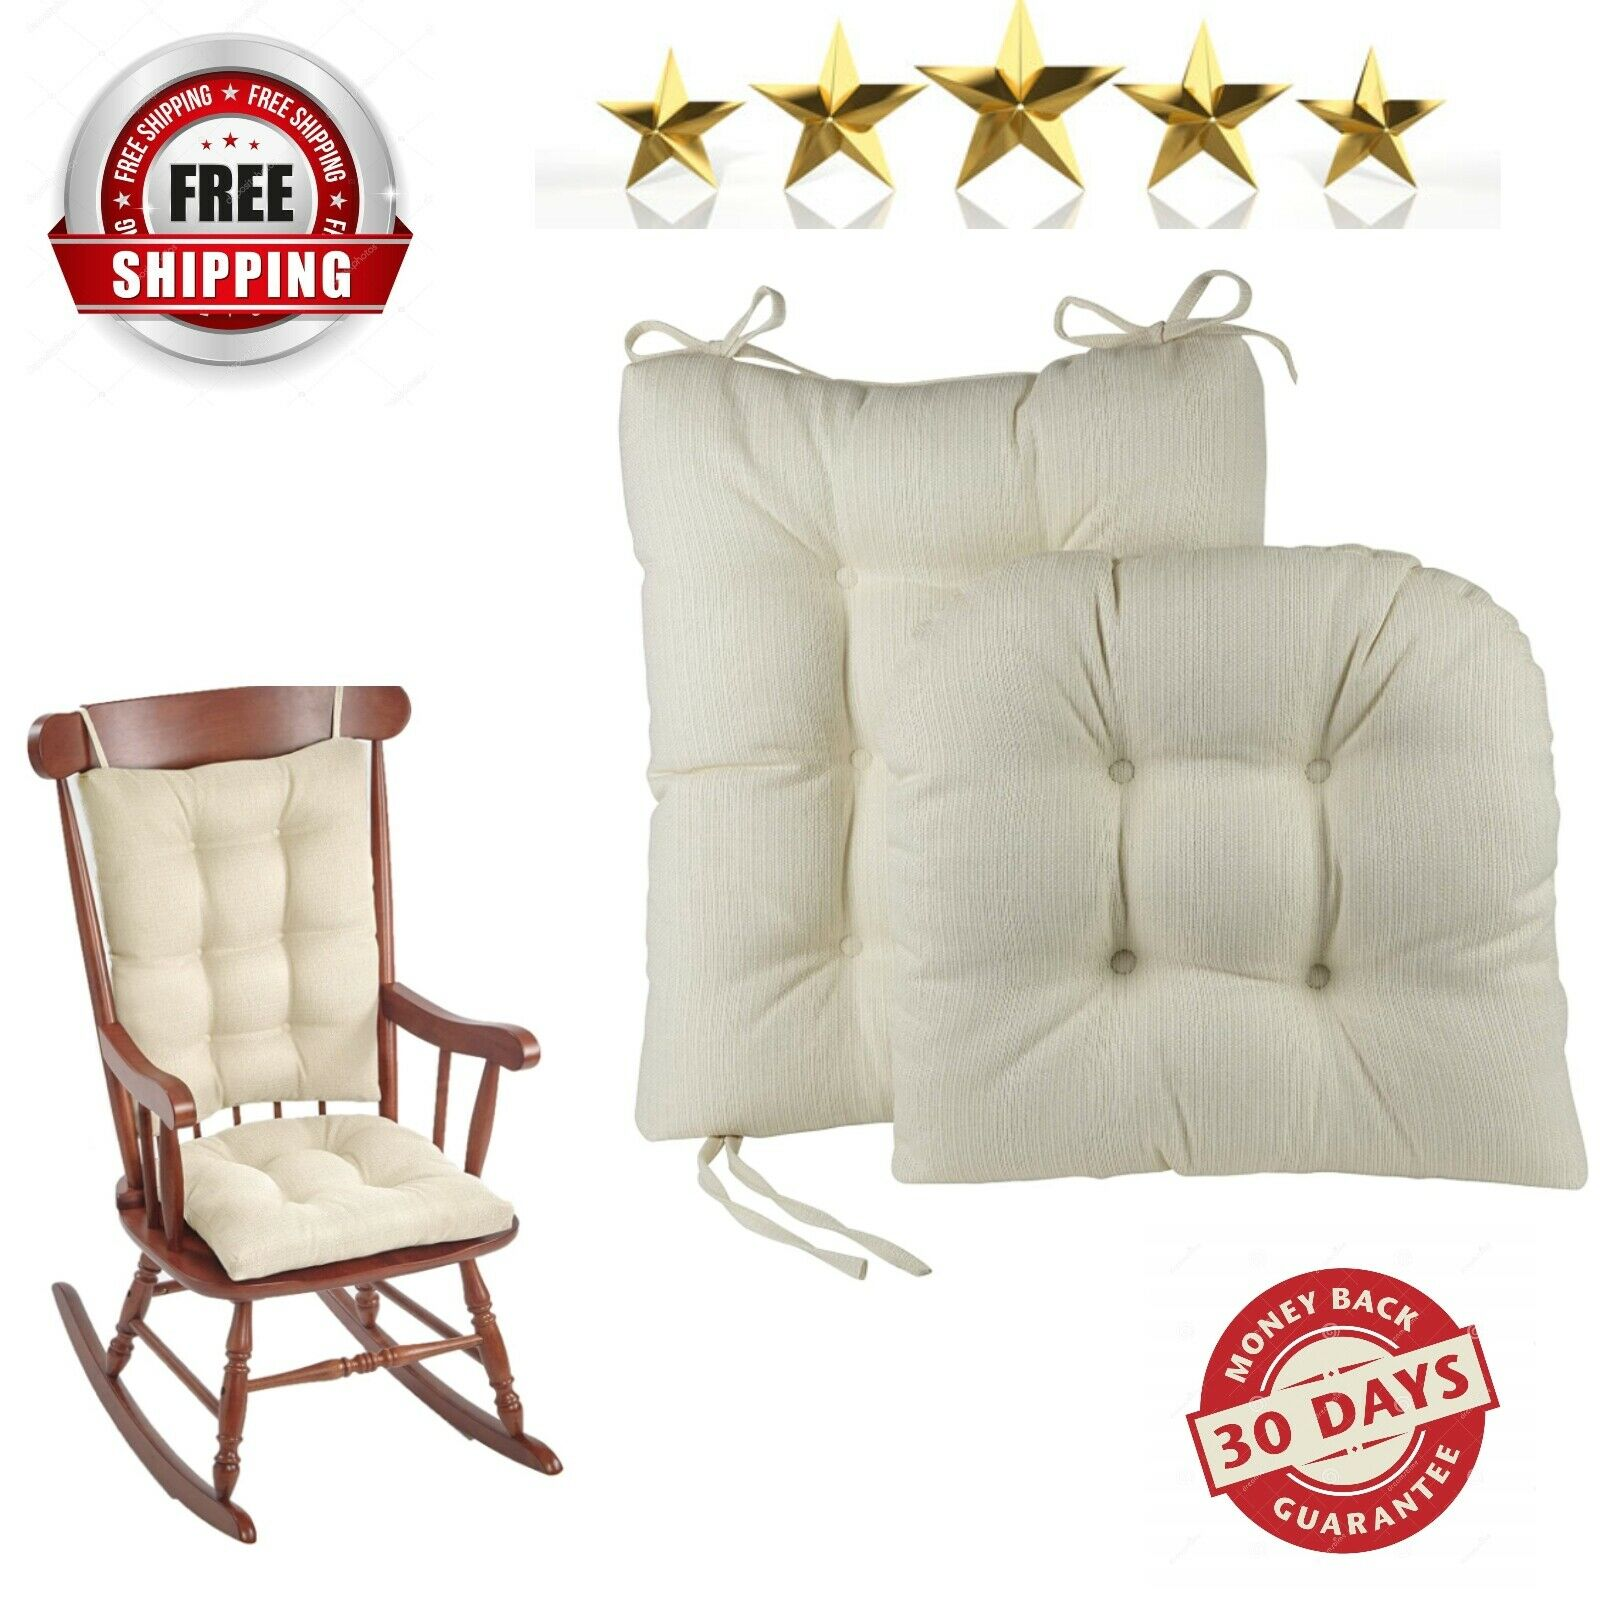 Picture of: The Gripper Twill Jumbo Xl Non Slip Rocking Chair Cushion Set Celadon Green For Sale Online Ebay